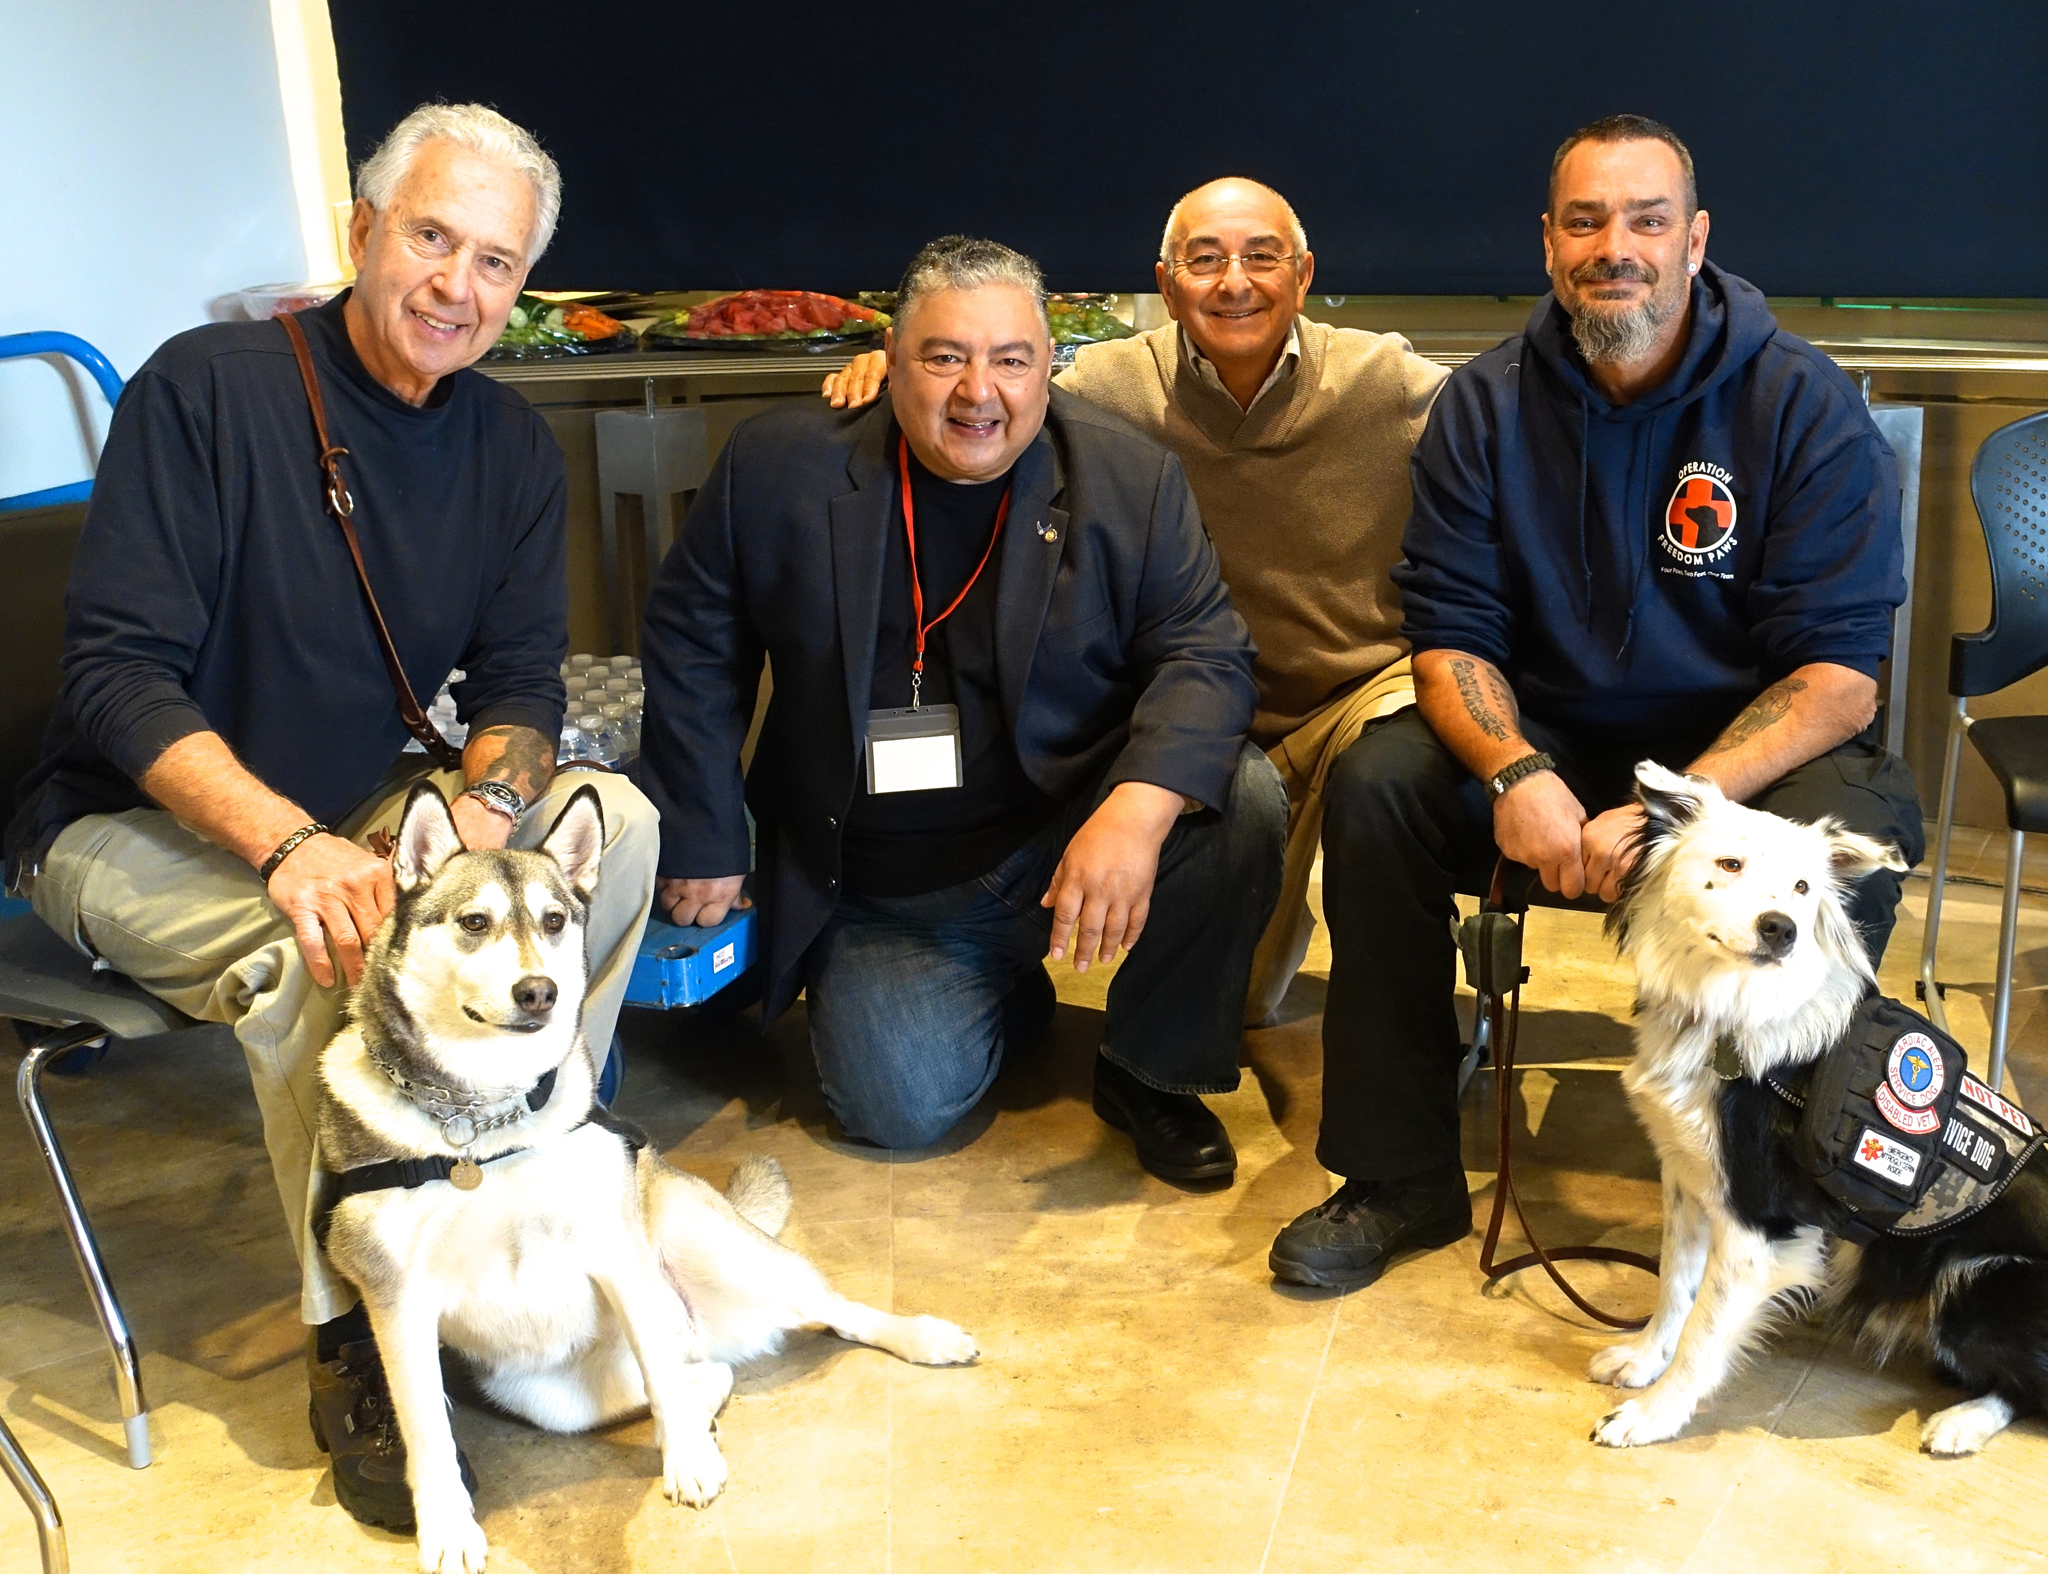 SFVFF_2015_Eddie_OFP_Service_Dogs_and_Vets.jpg